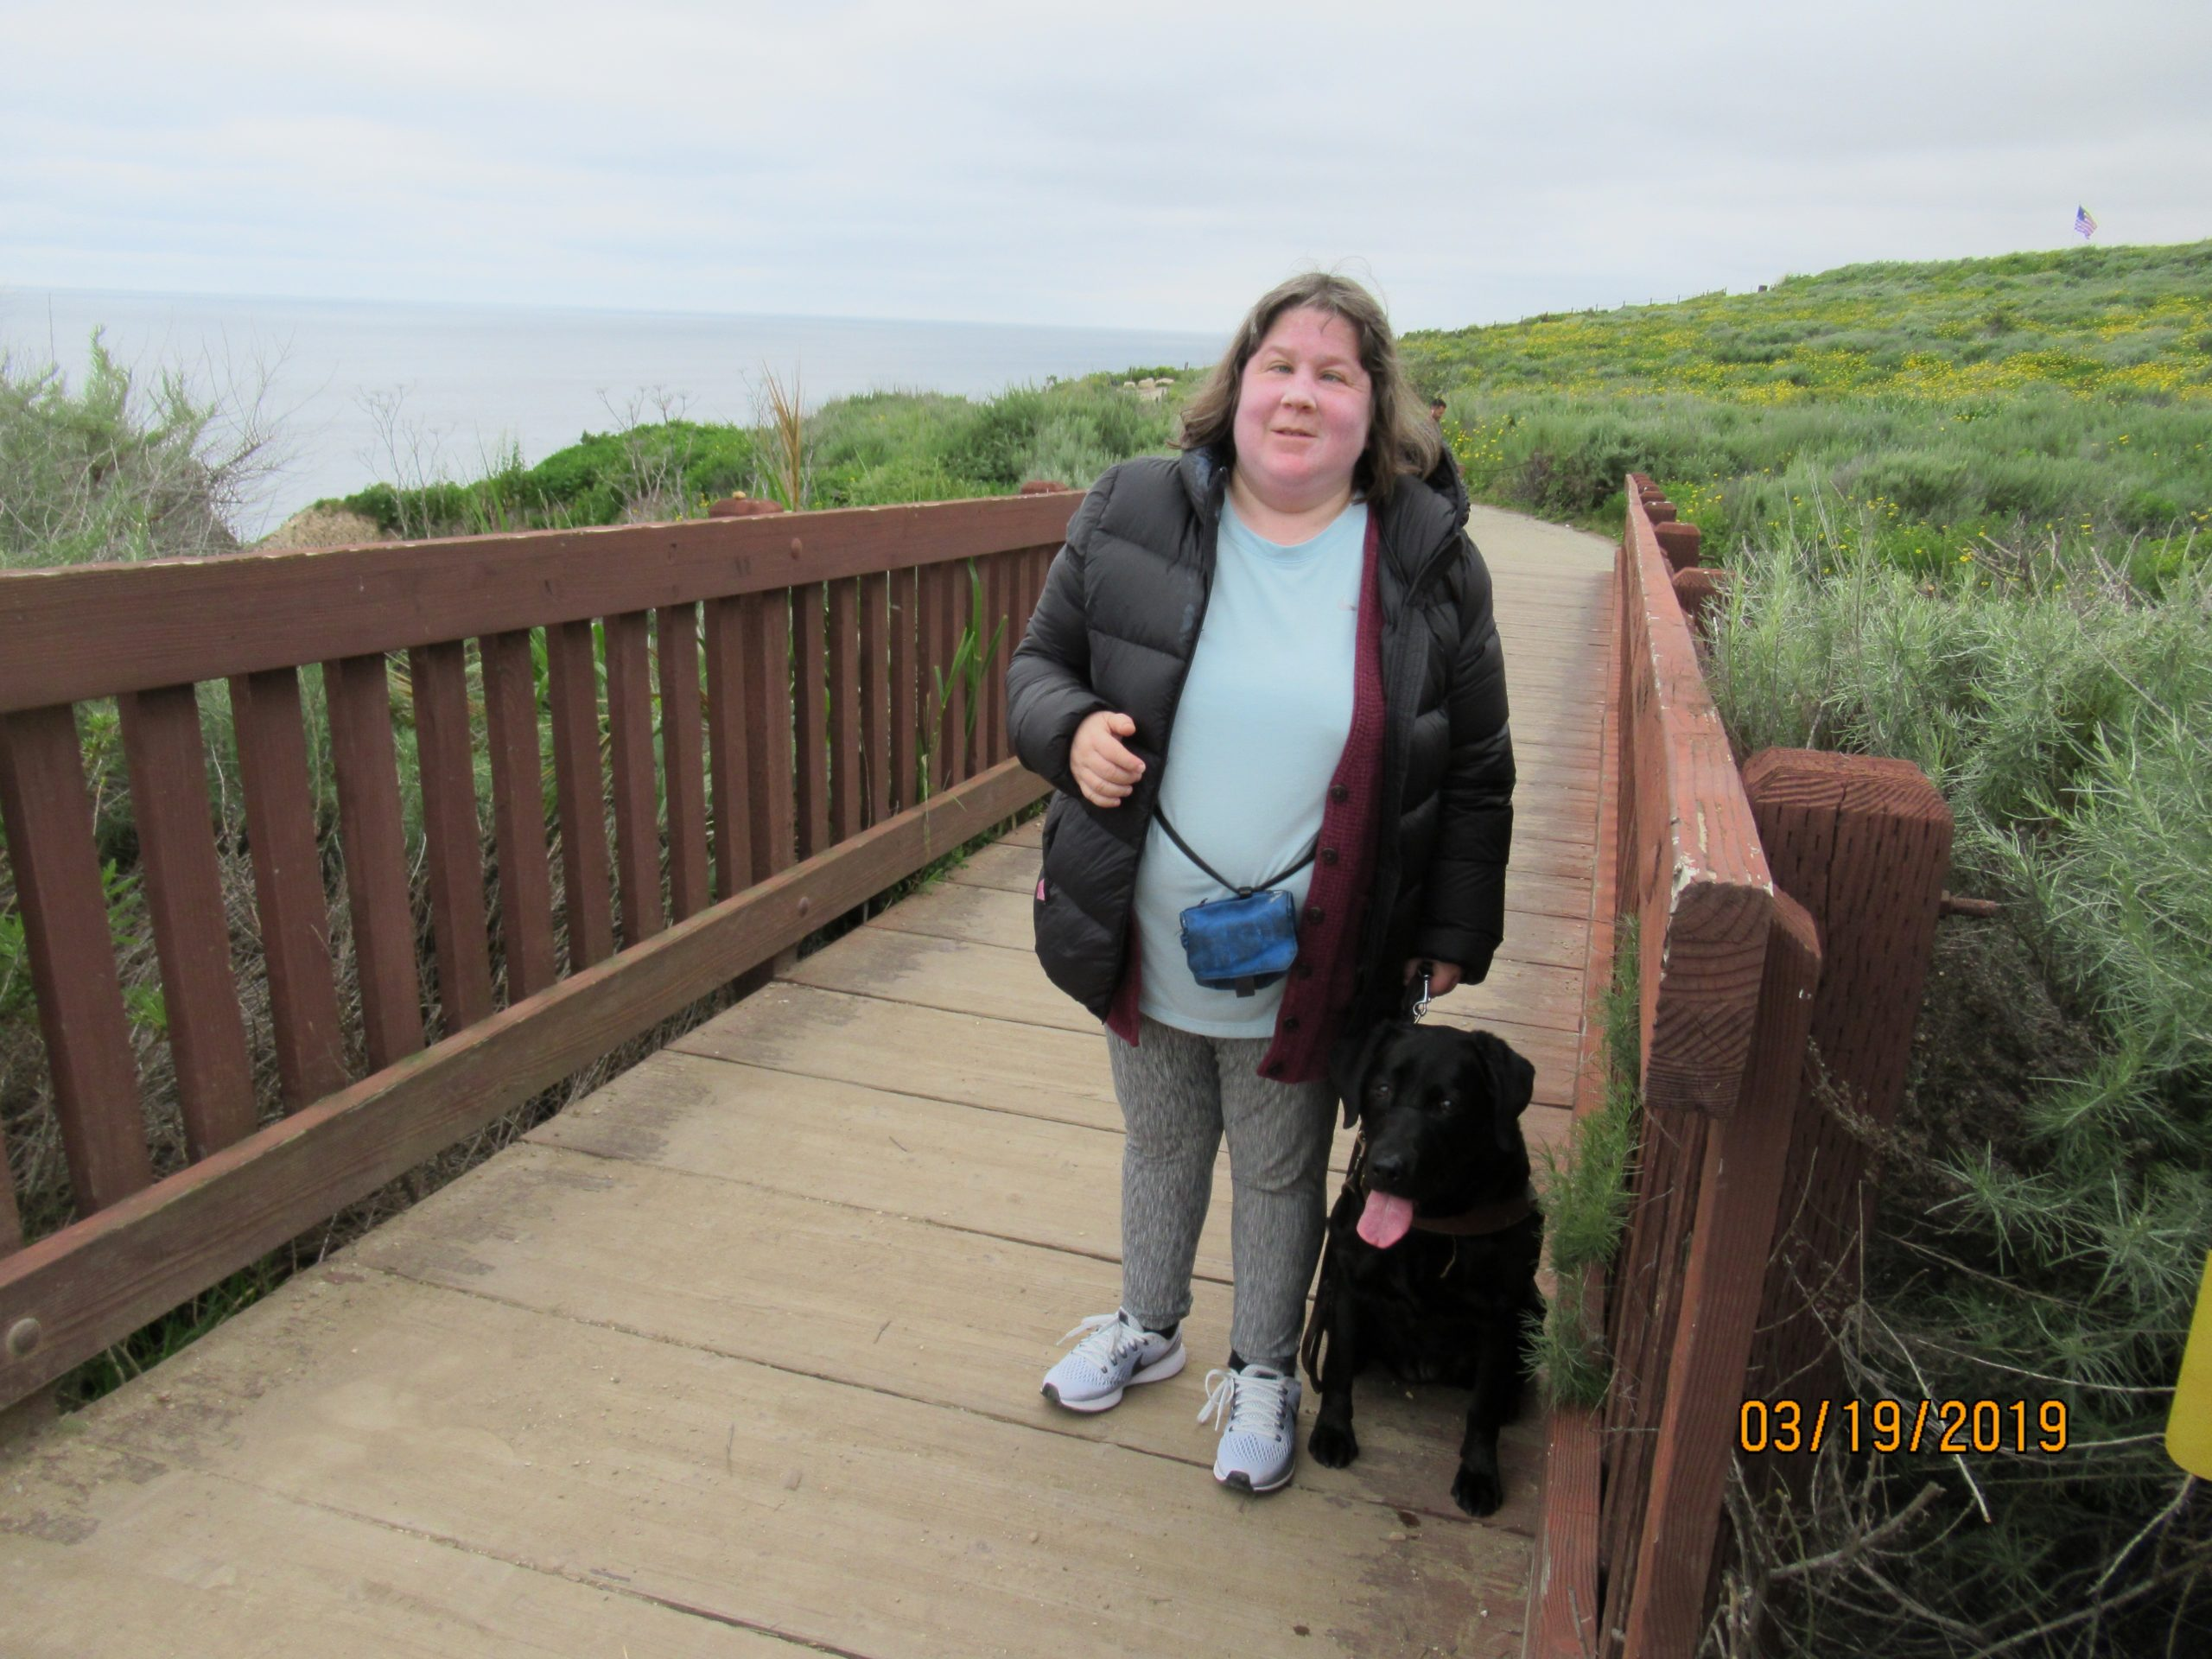 Tansy and I on the bridge at the golf course